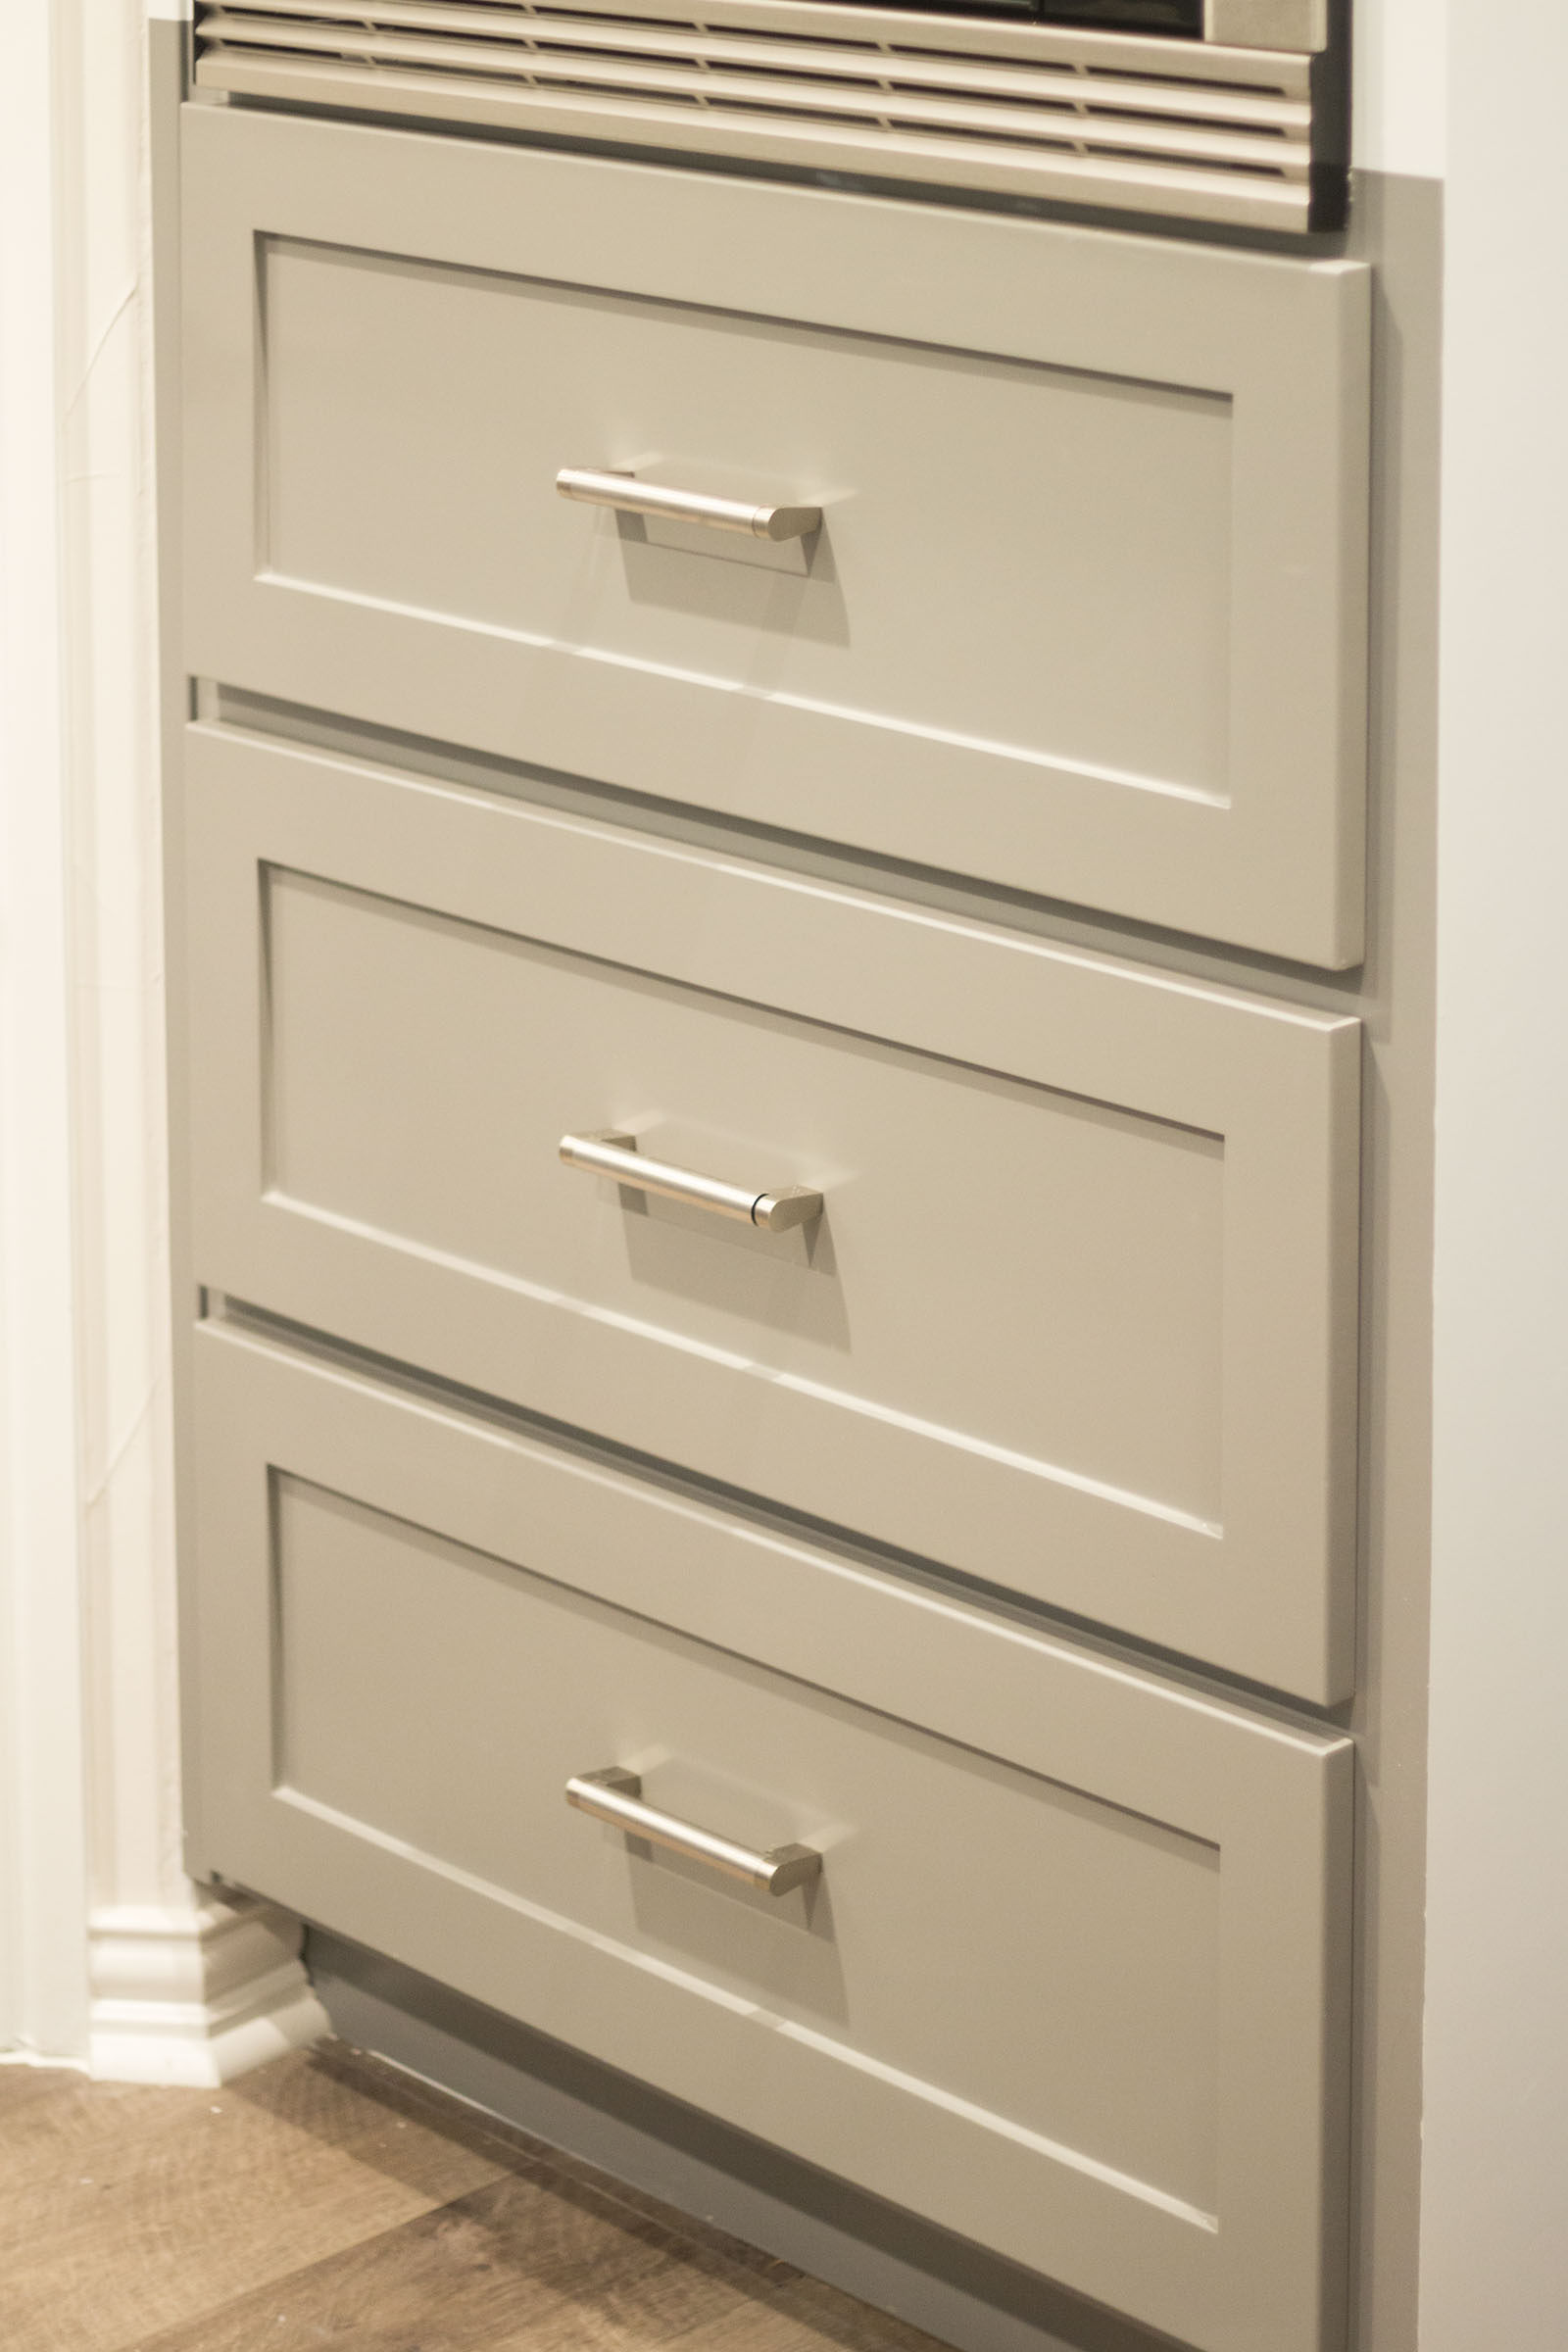 Close up photo of grey shaker style cabinet drawers and matte silver pulls